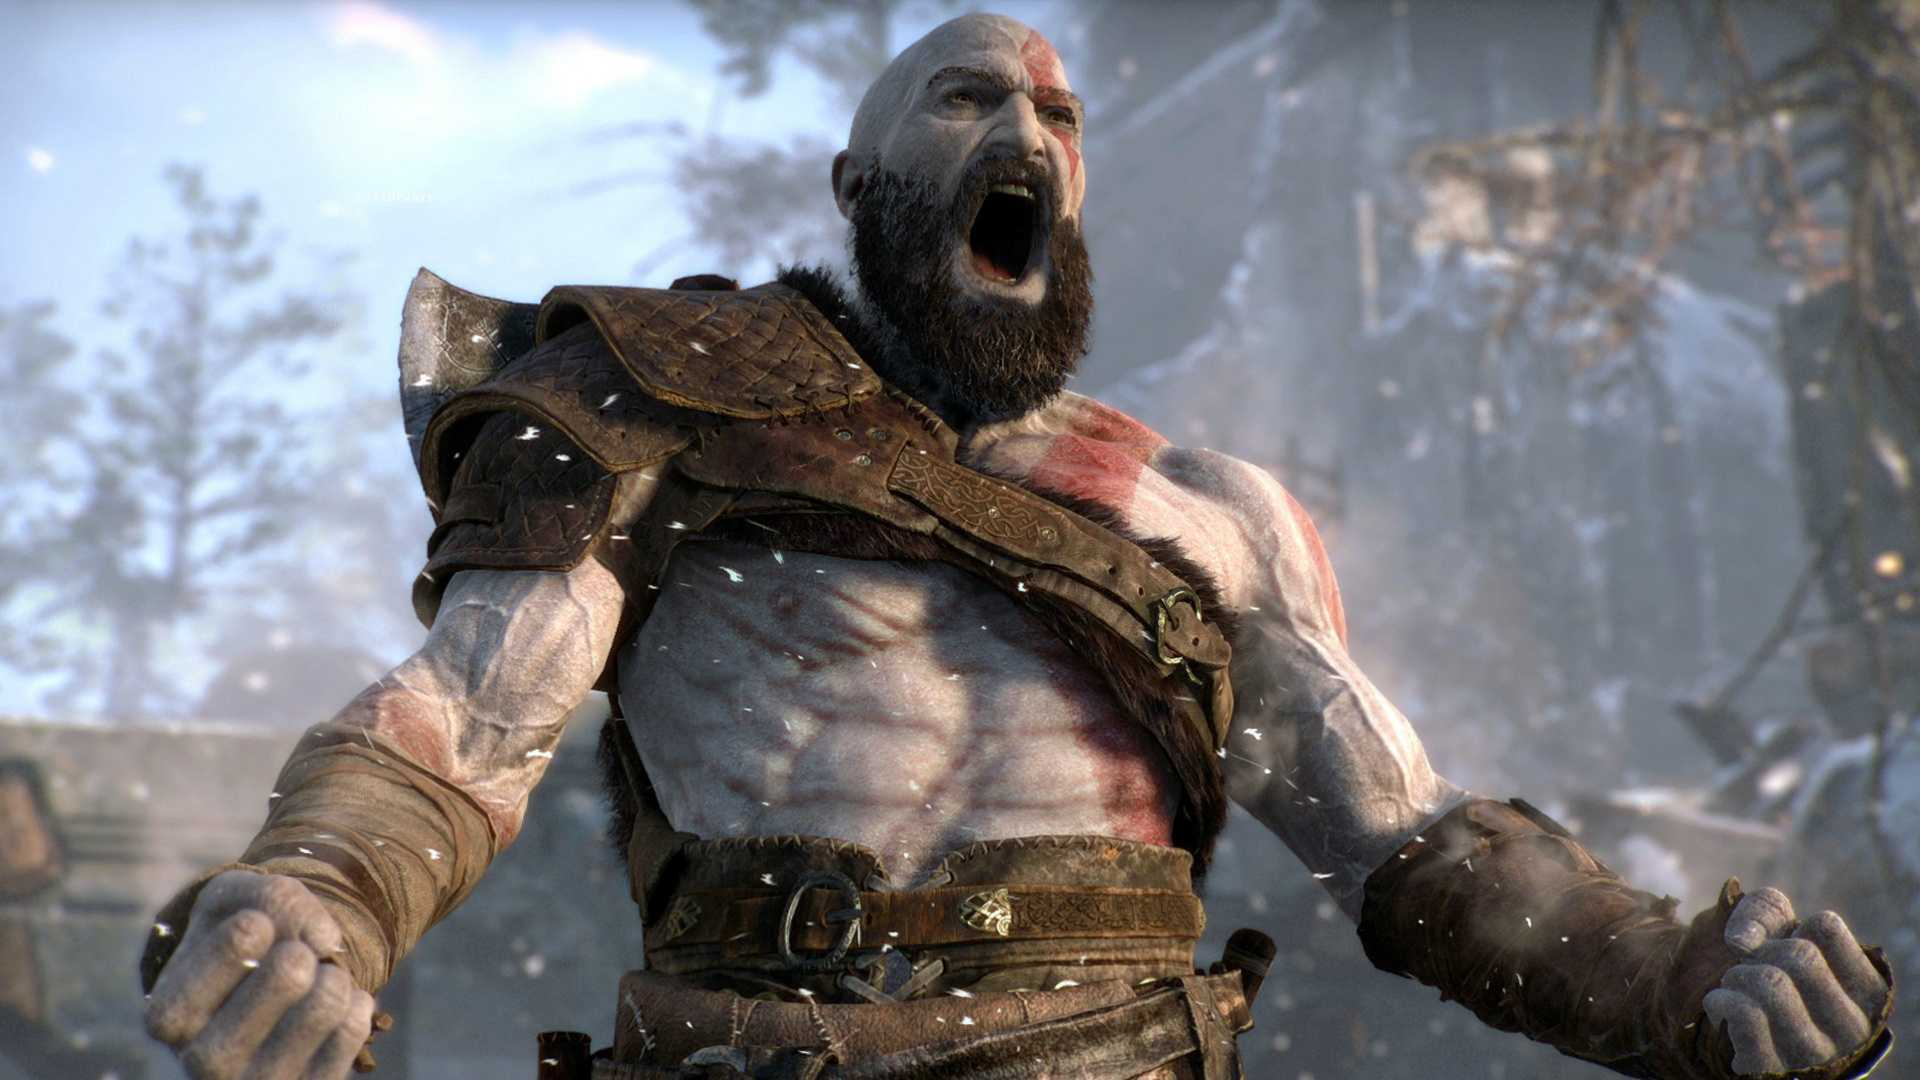 Источник: godofwar.playstation.com